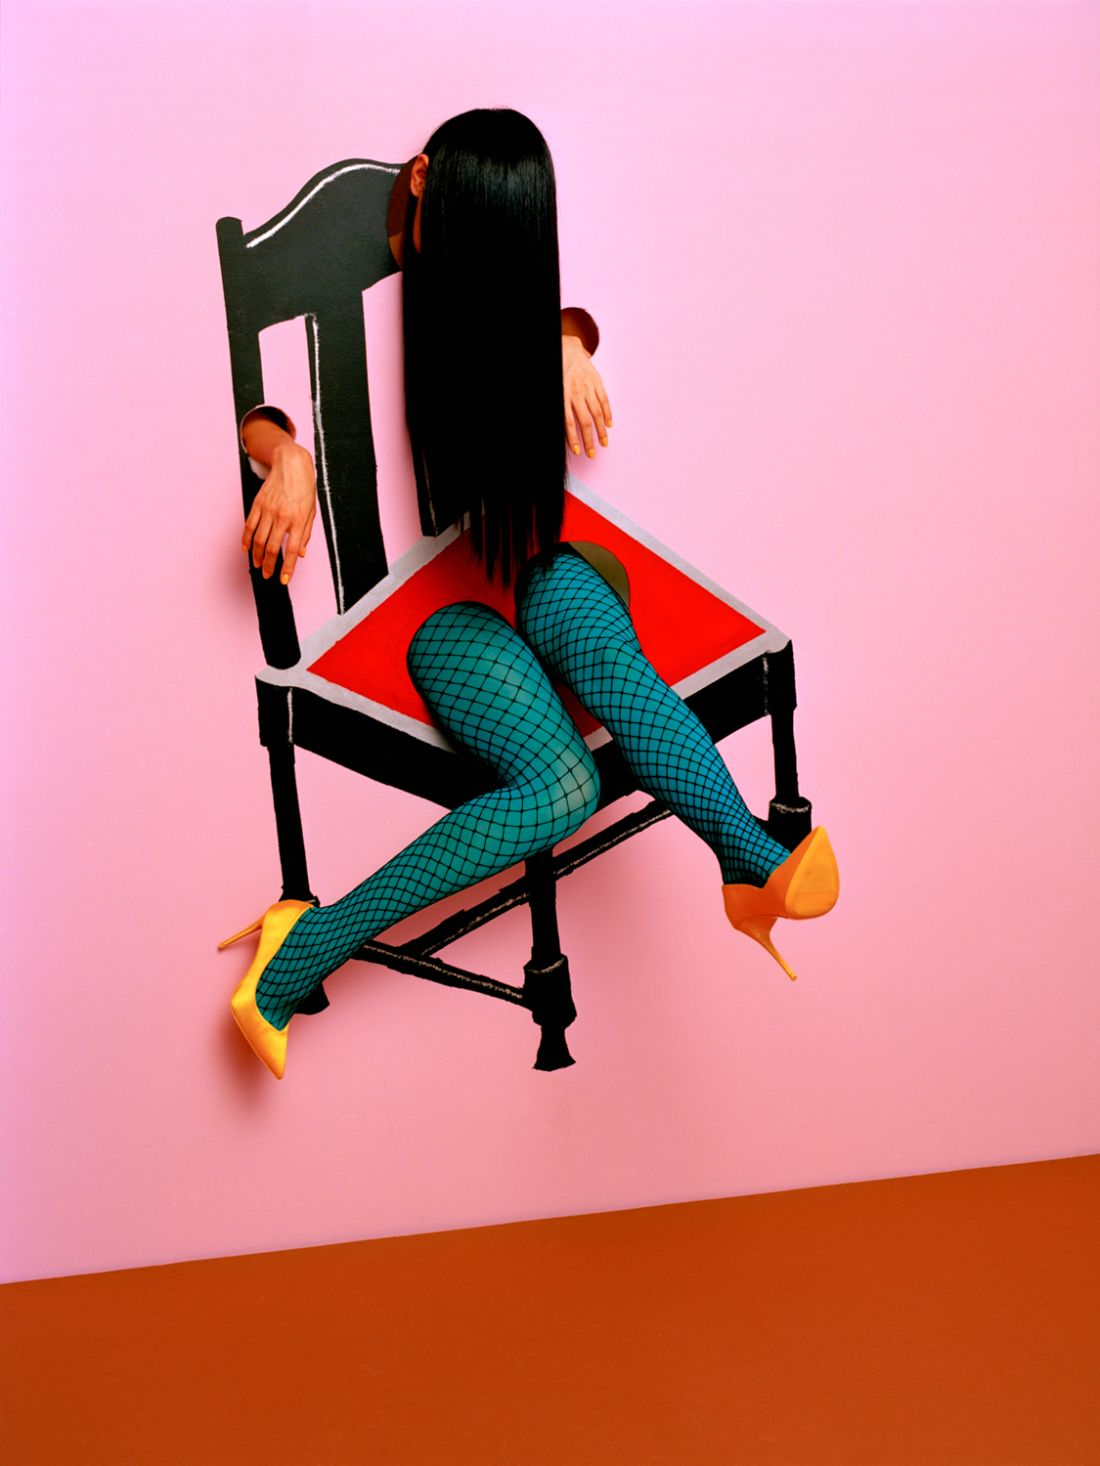 Theatrical photographs by Kuzma & Ajuan inspired by Magritte, Van Gogh, Picasso and Dali